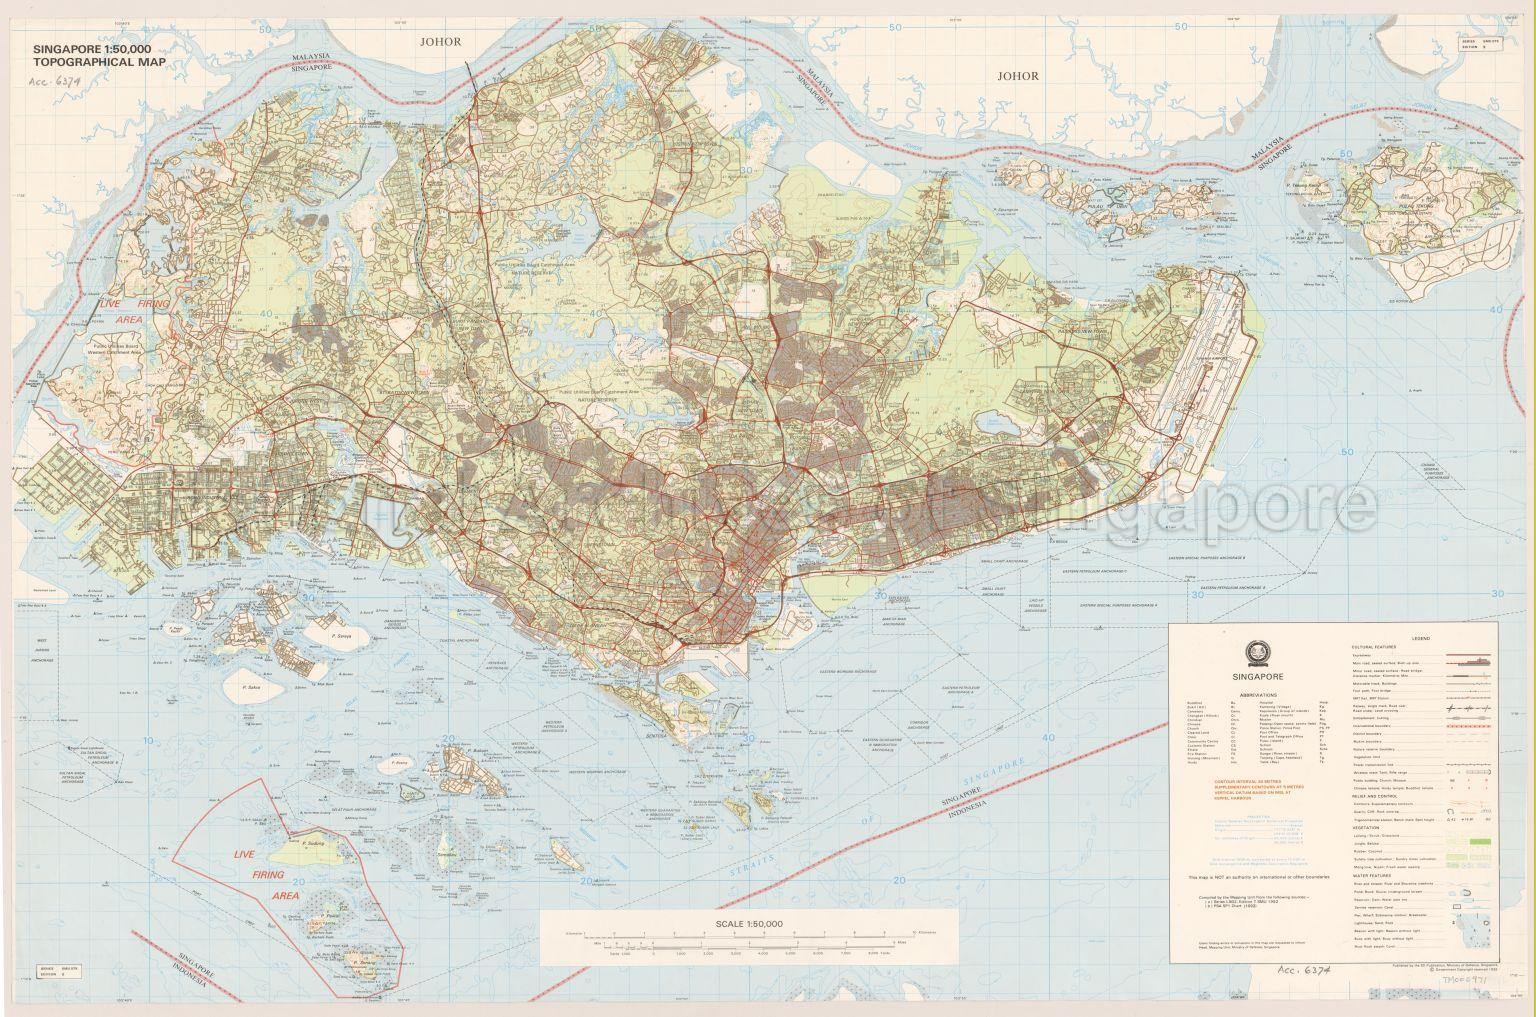 Singapore Topographical Map